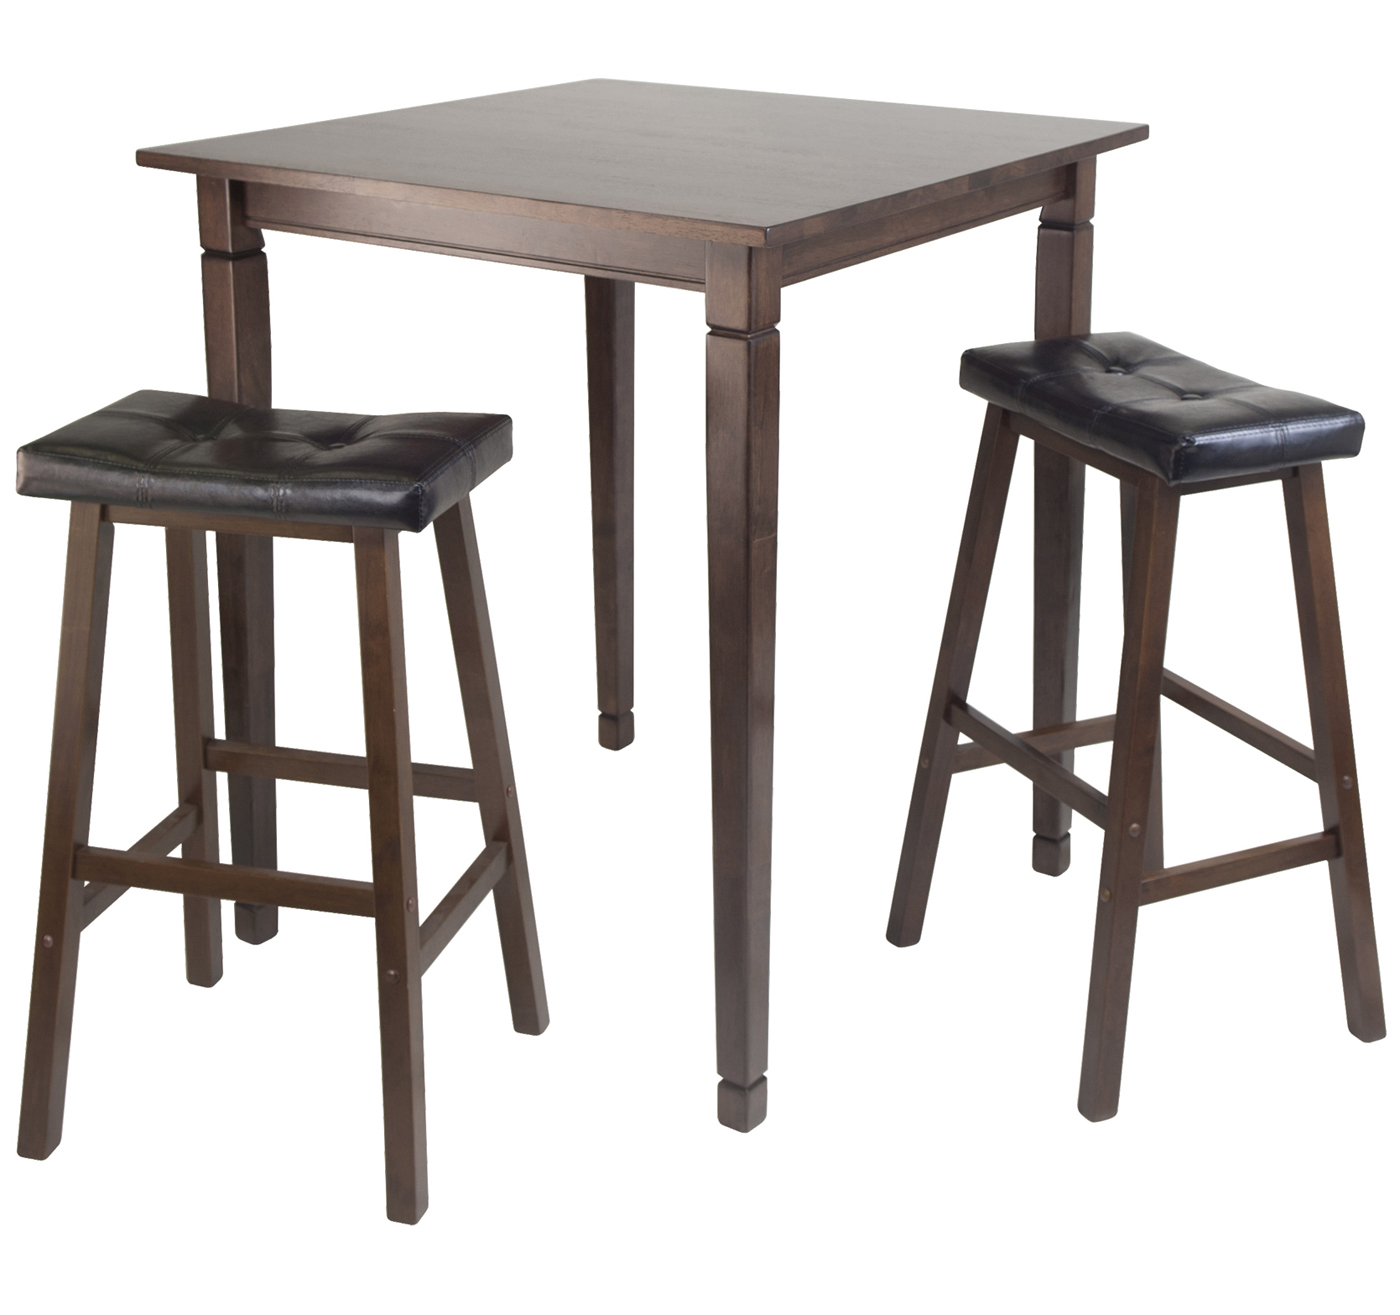 High Top Table With Saddle Stools Set Of 3 In Bar Table Sets